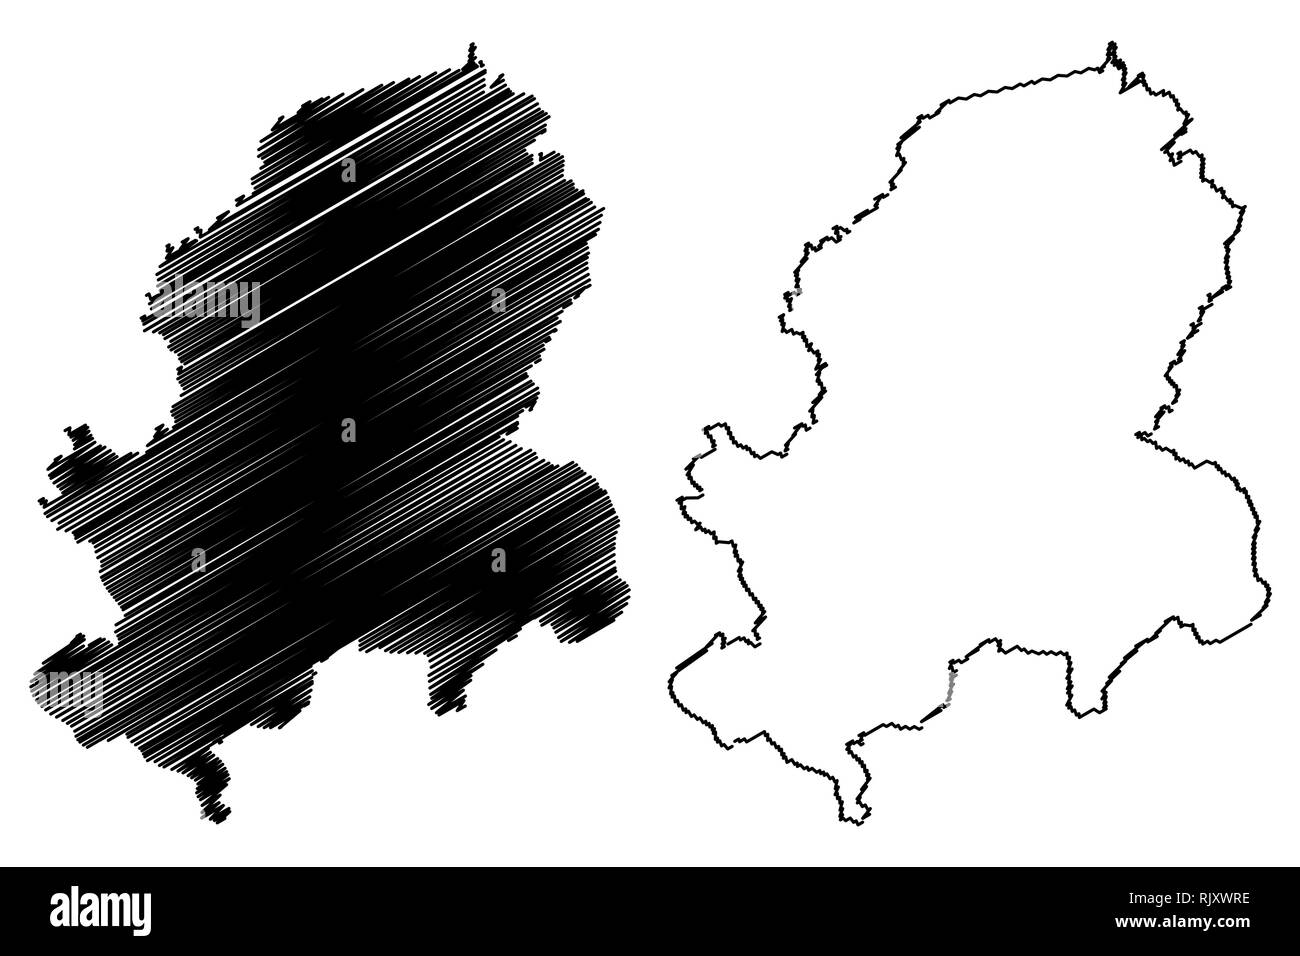 Dong Nai Province (Socialist Republic of Vietnam, Subdivisions of Vietnam) map vector illustration, scribble sketch Tinh Dong Nai map - Stock Image